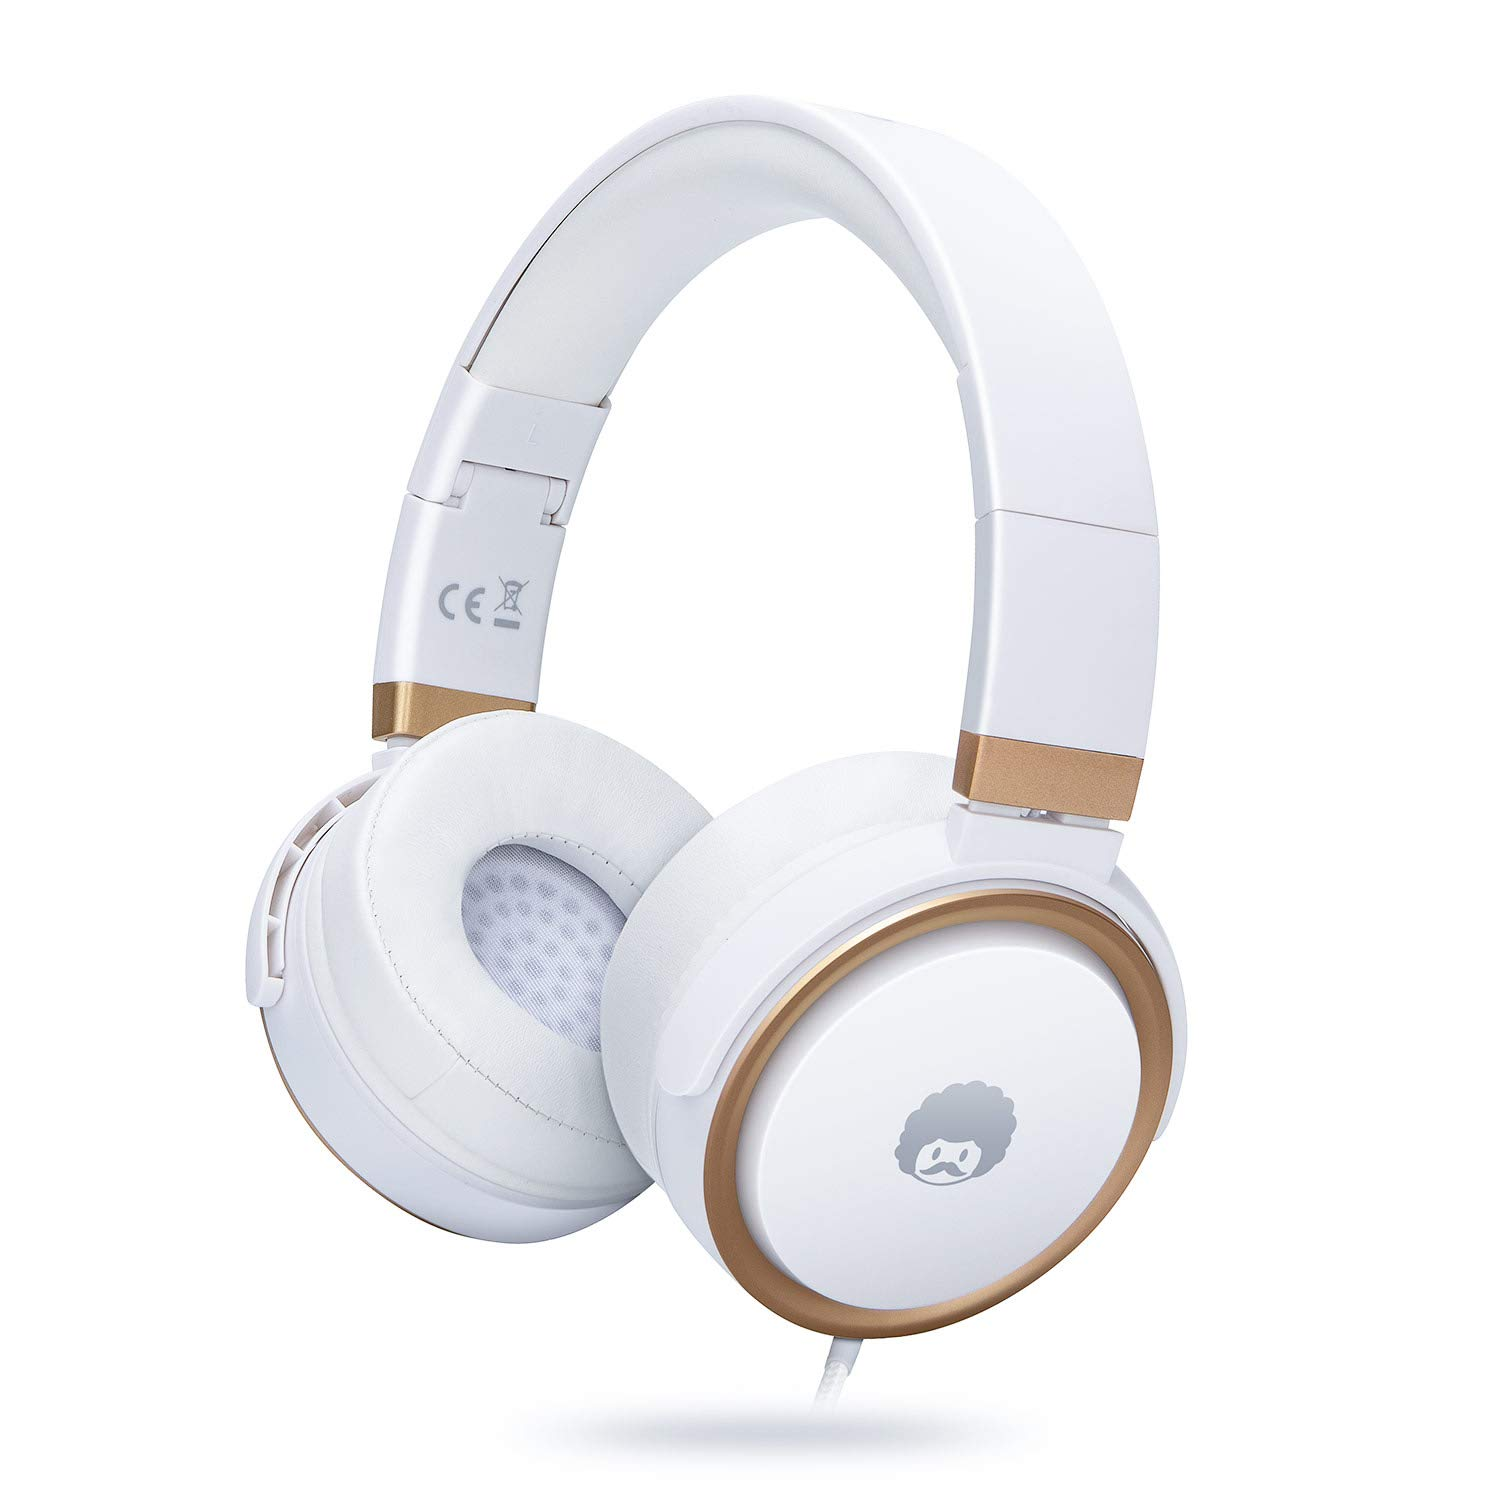 Wired Headphones with Microphone and Volume Control